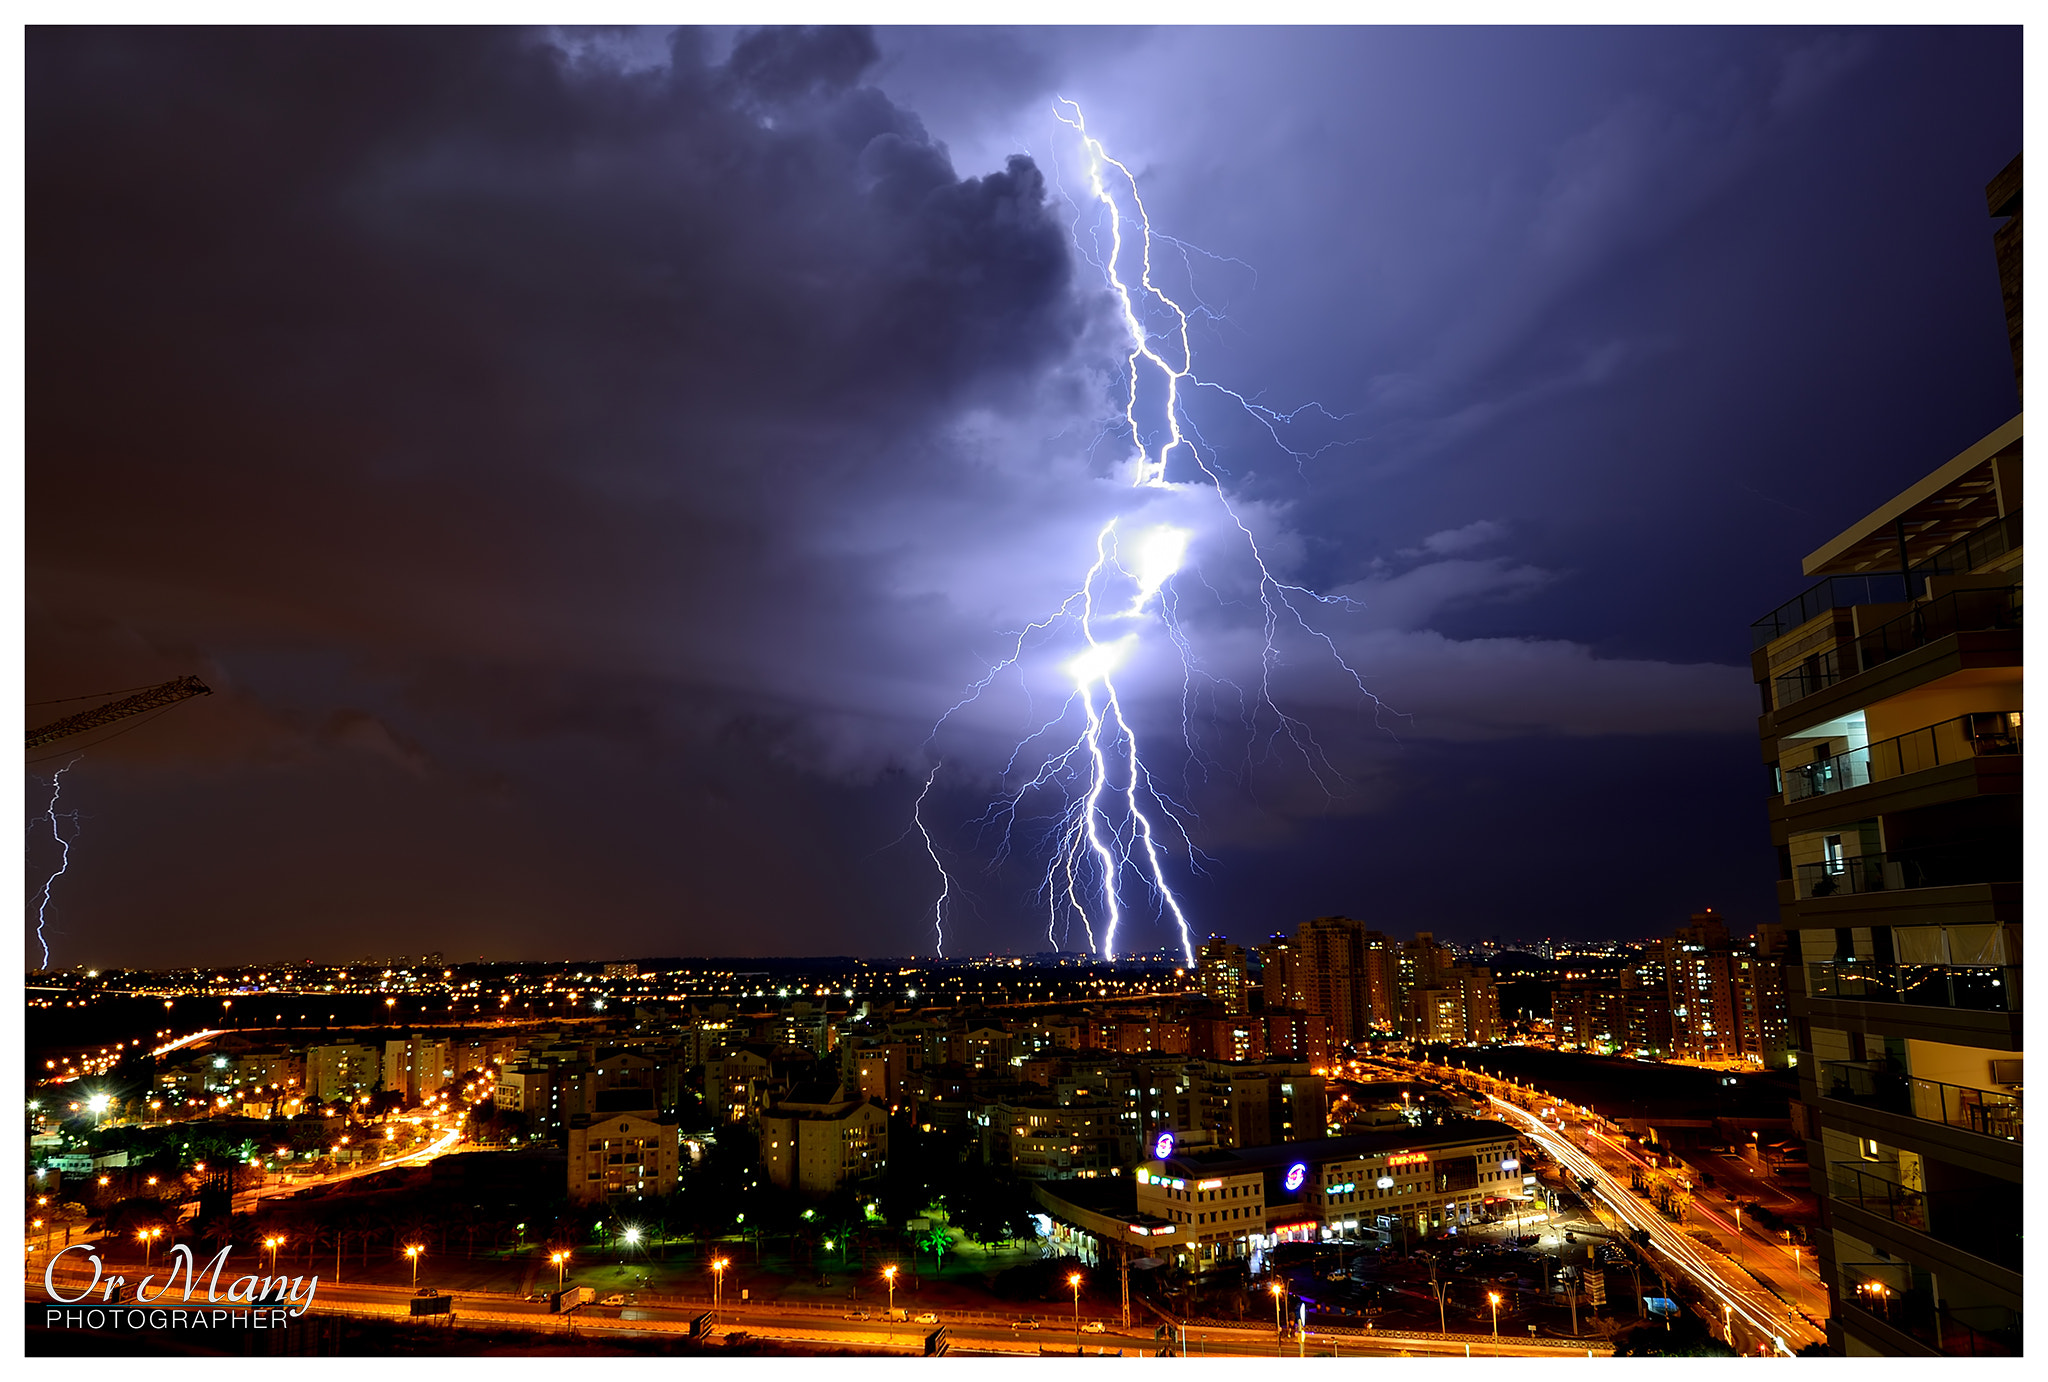 Photograph Ride the lightning by Or Many on 500px